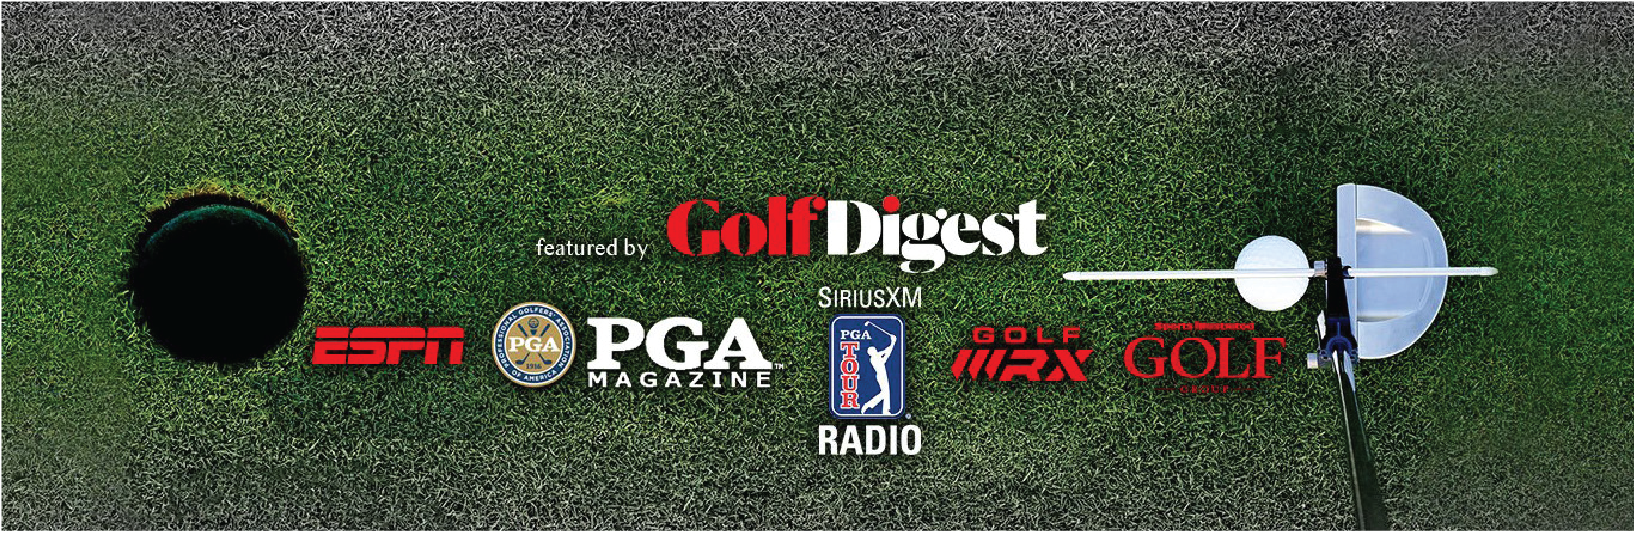 Dirty Larry Golf was featured by The Golf Digest